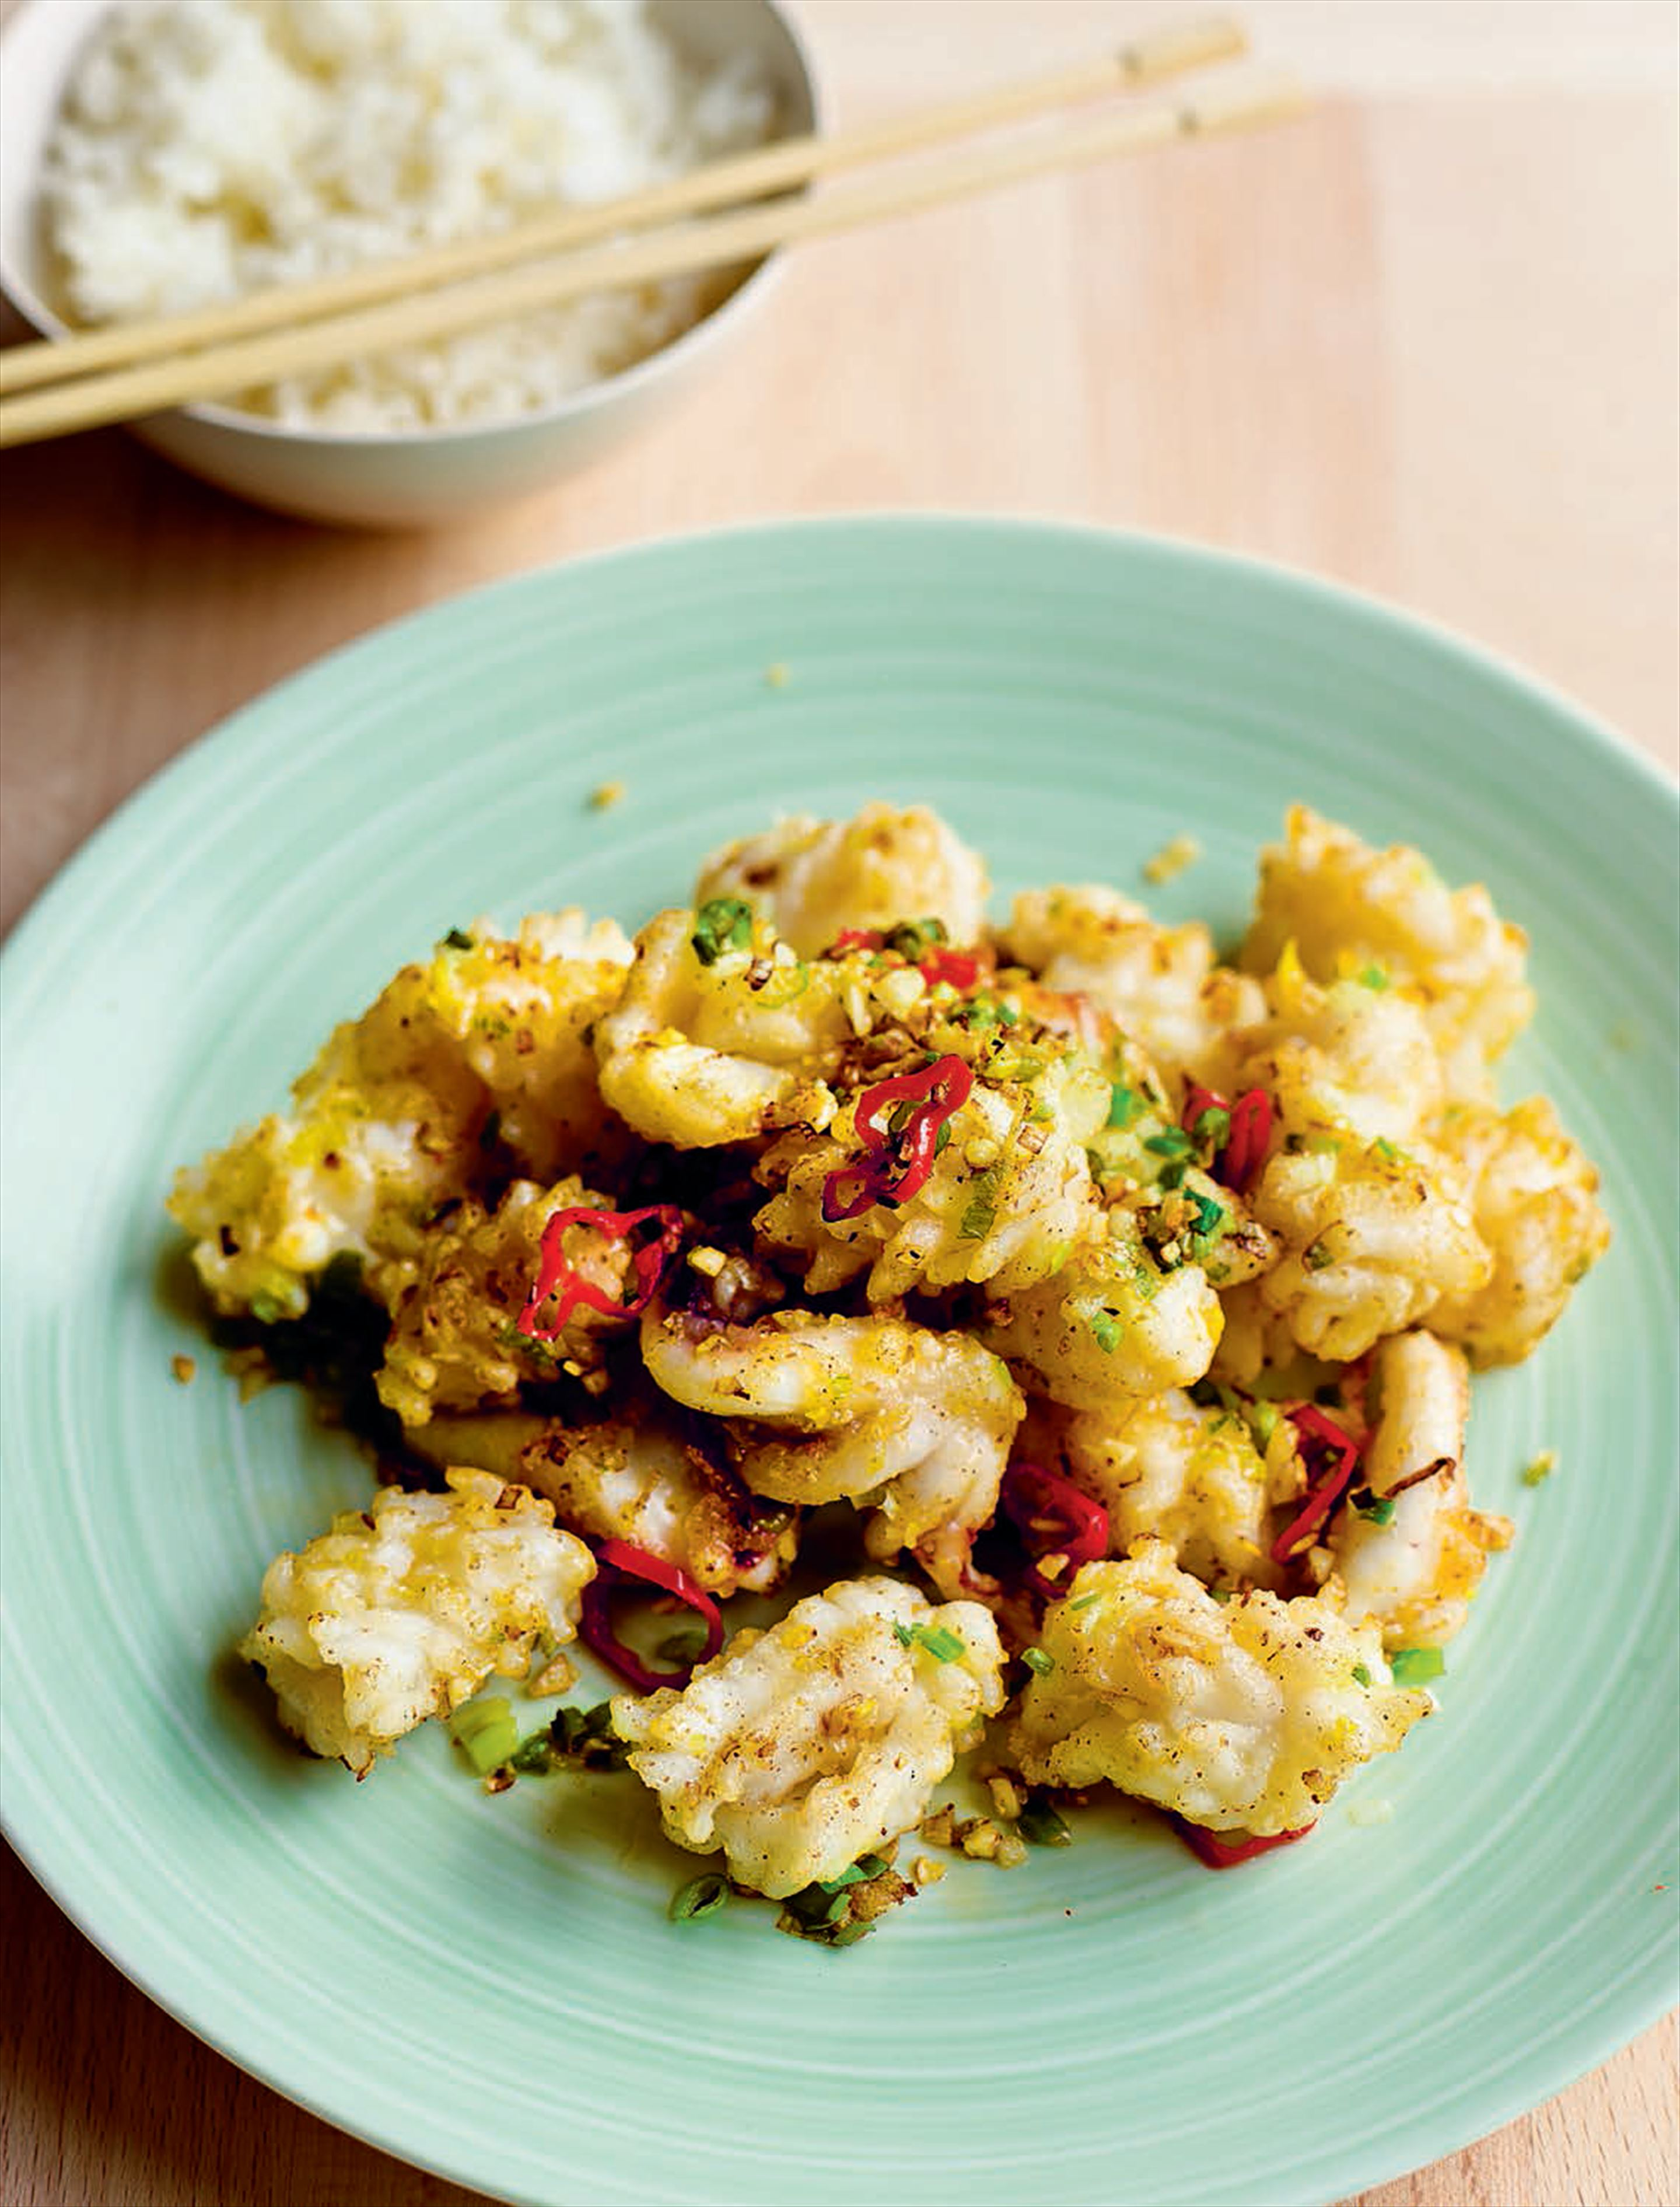 Salt-and-pepper squid